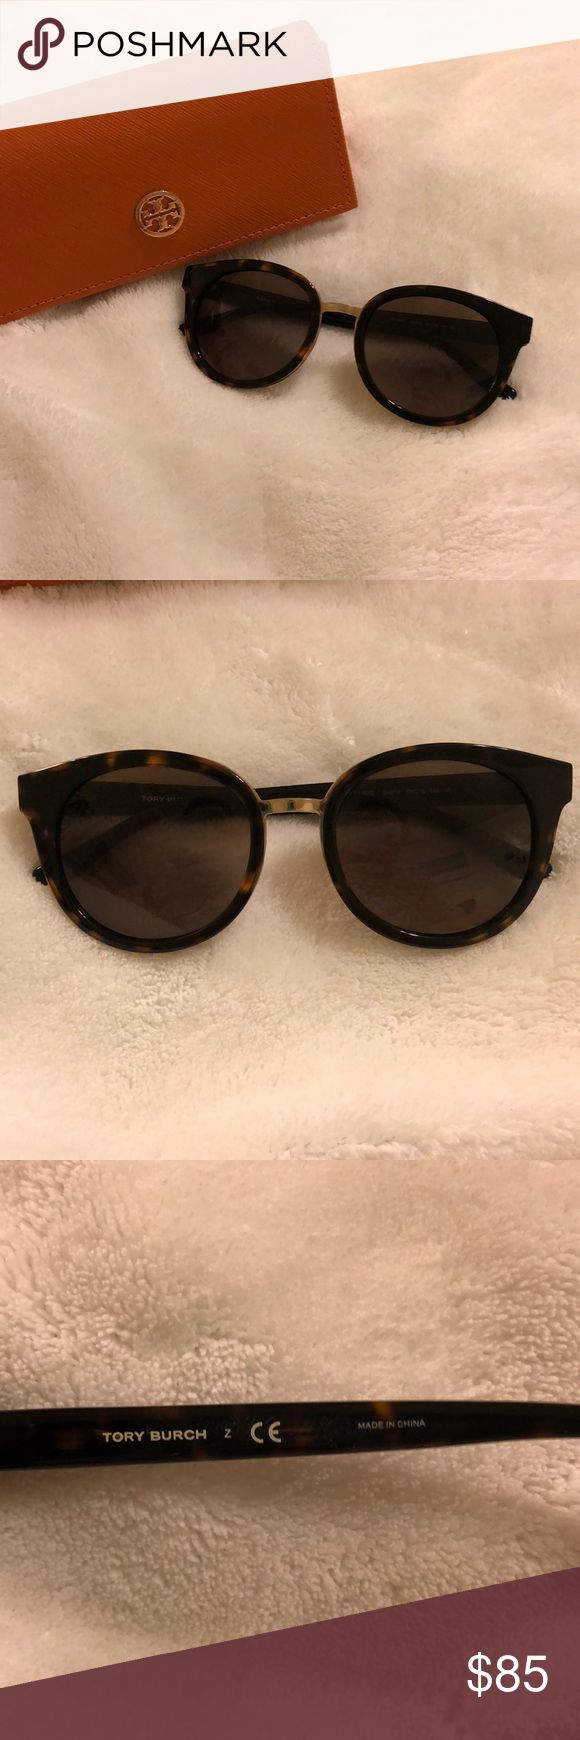 Tory Burch tortoise sunglasses Round / cat eye tortoise Tory Burch sunglasses 2016 line  Worn three or four times Come with bag and case Like new Tory Burch Accessories Sunglasses